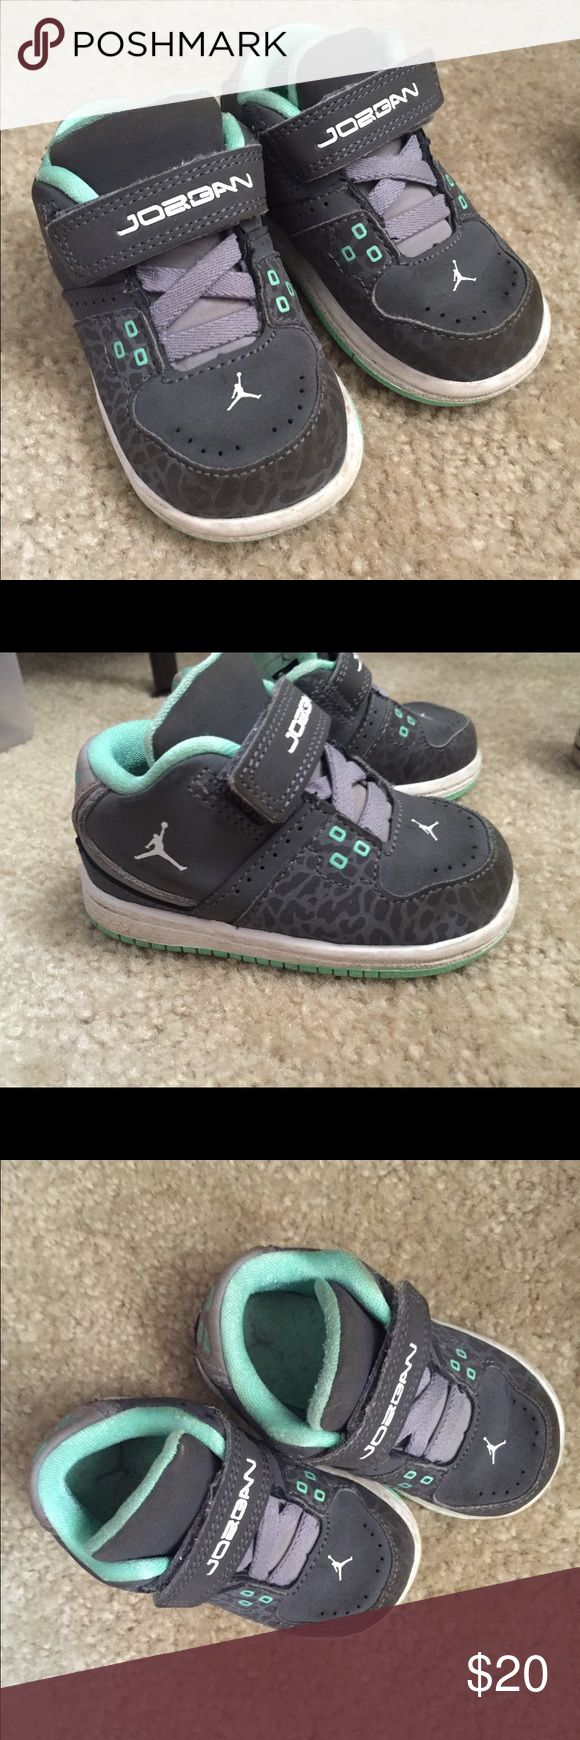 Baby Jordan's 3T 3T Jordan's gray and teal Jordan Shoes Sneakers